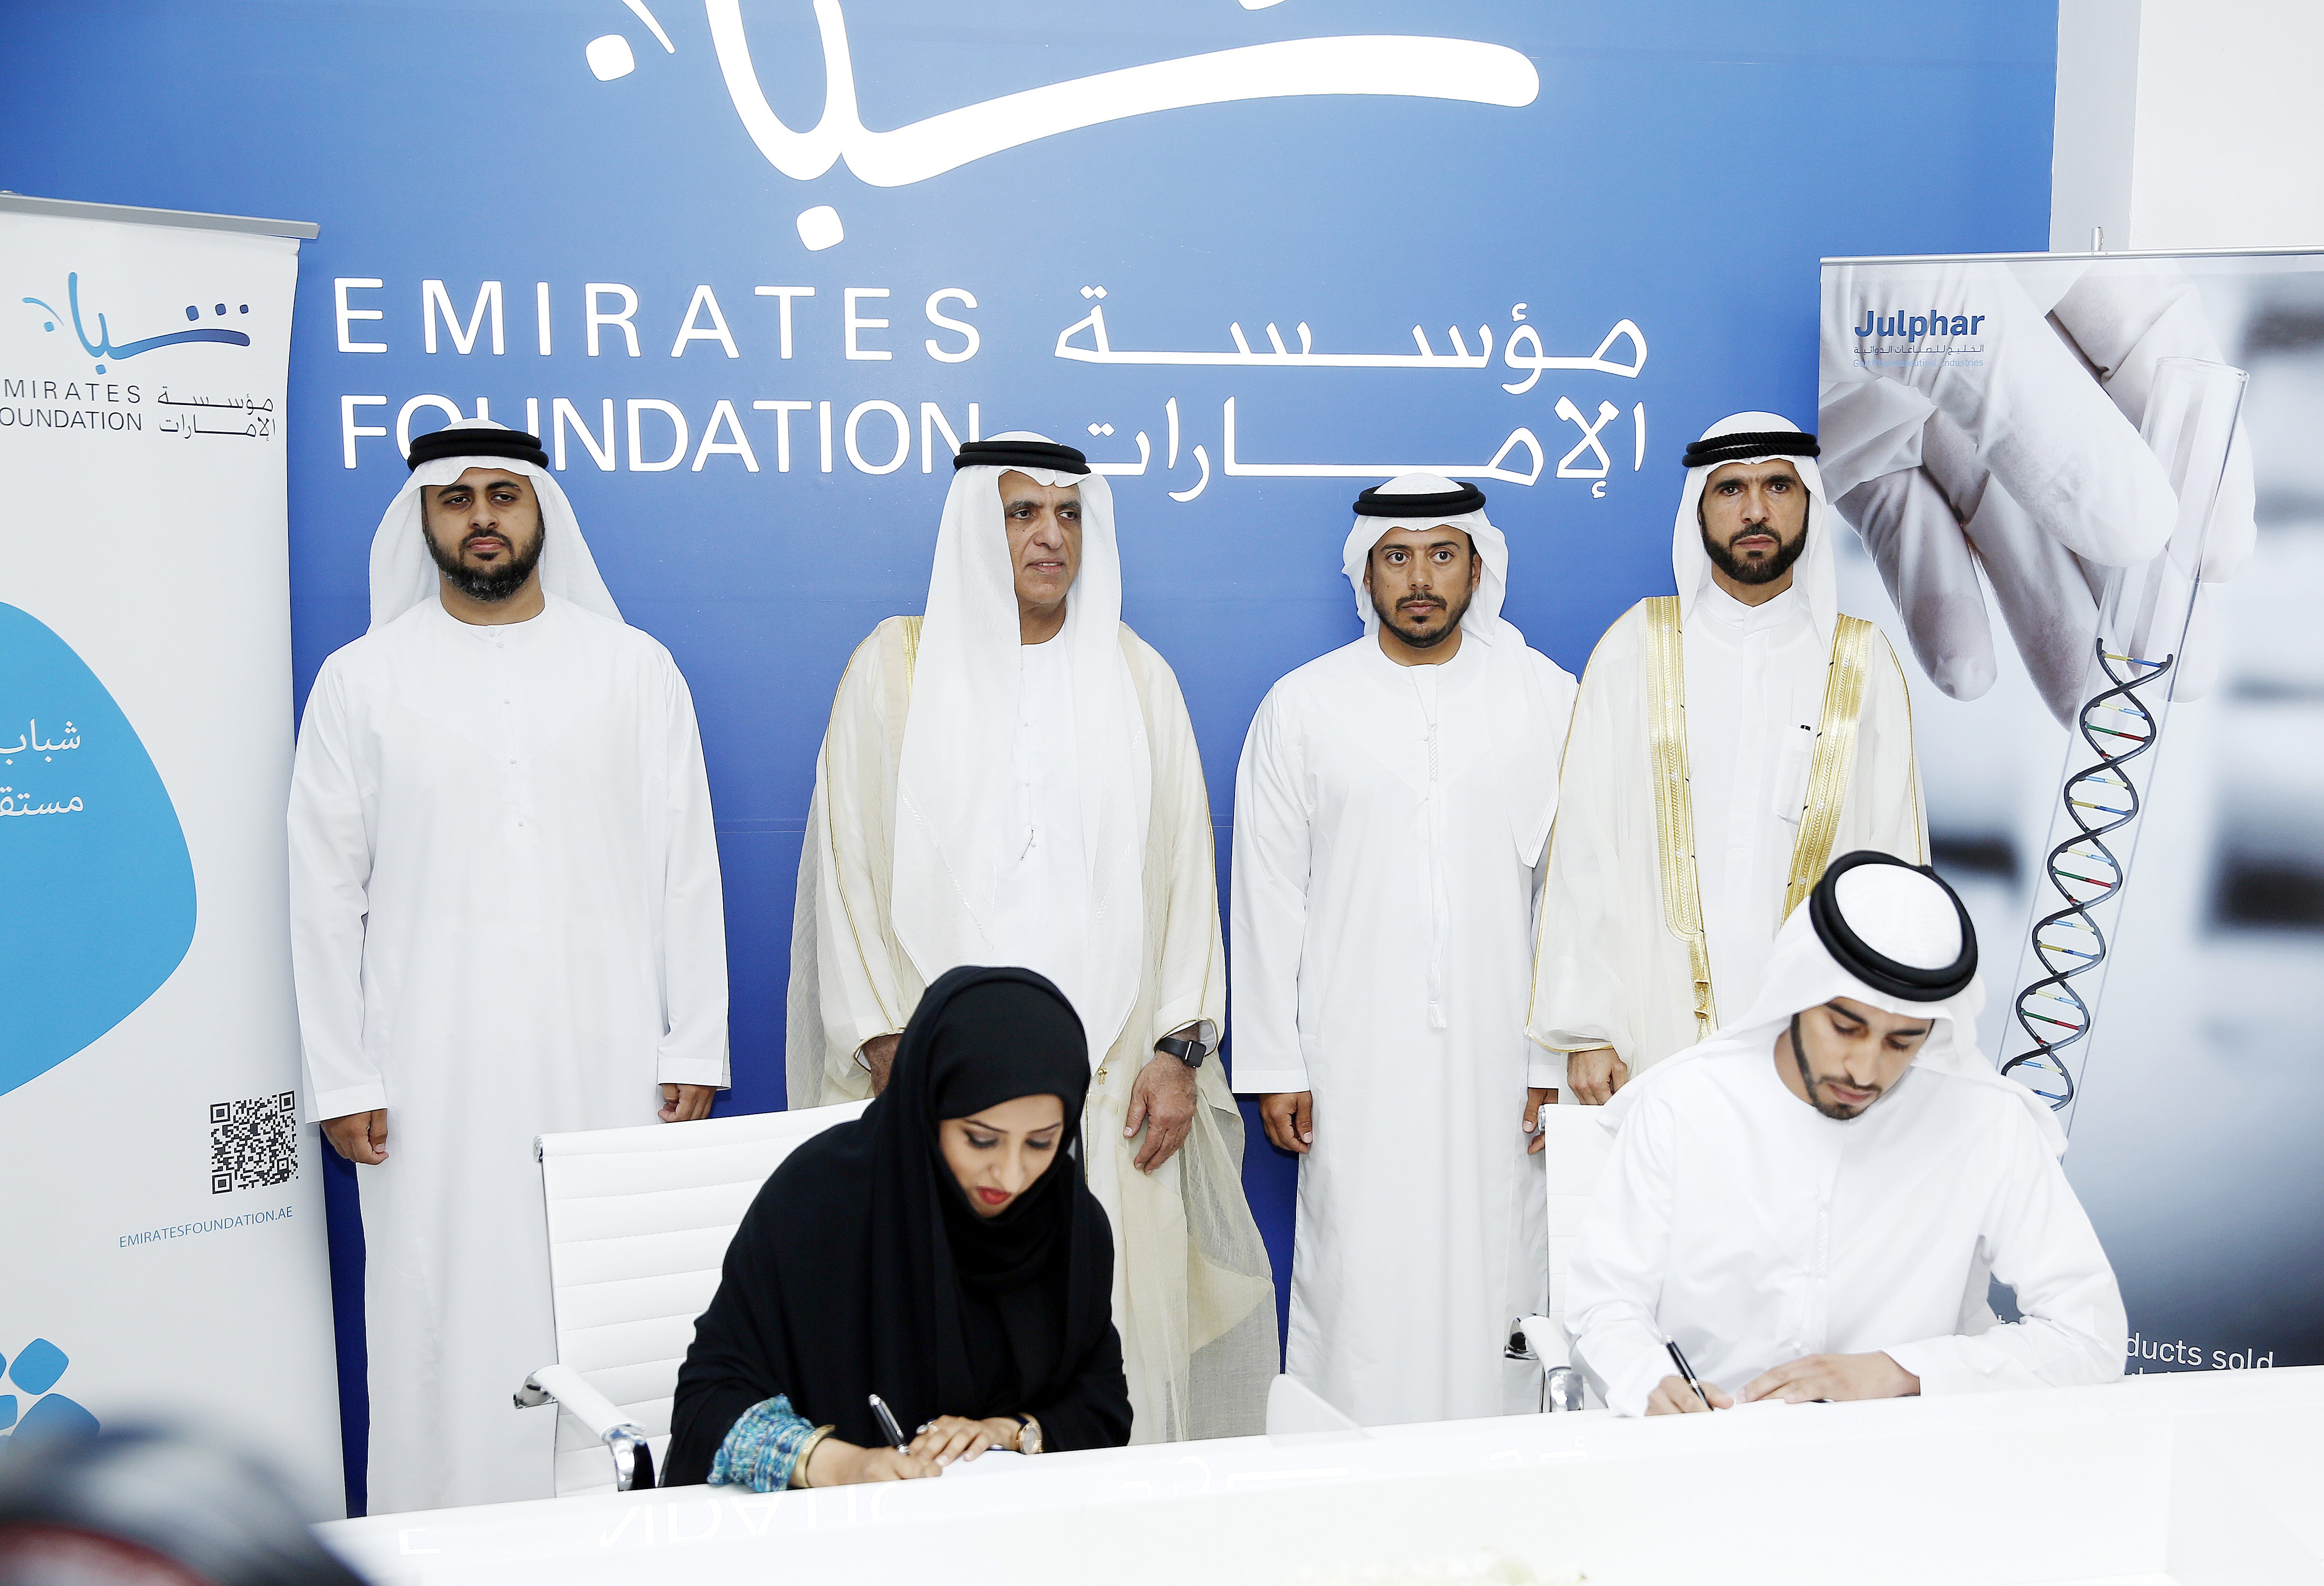 Julphar joins Emirates Foundation in making a brighter future for youth in UAE